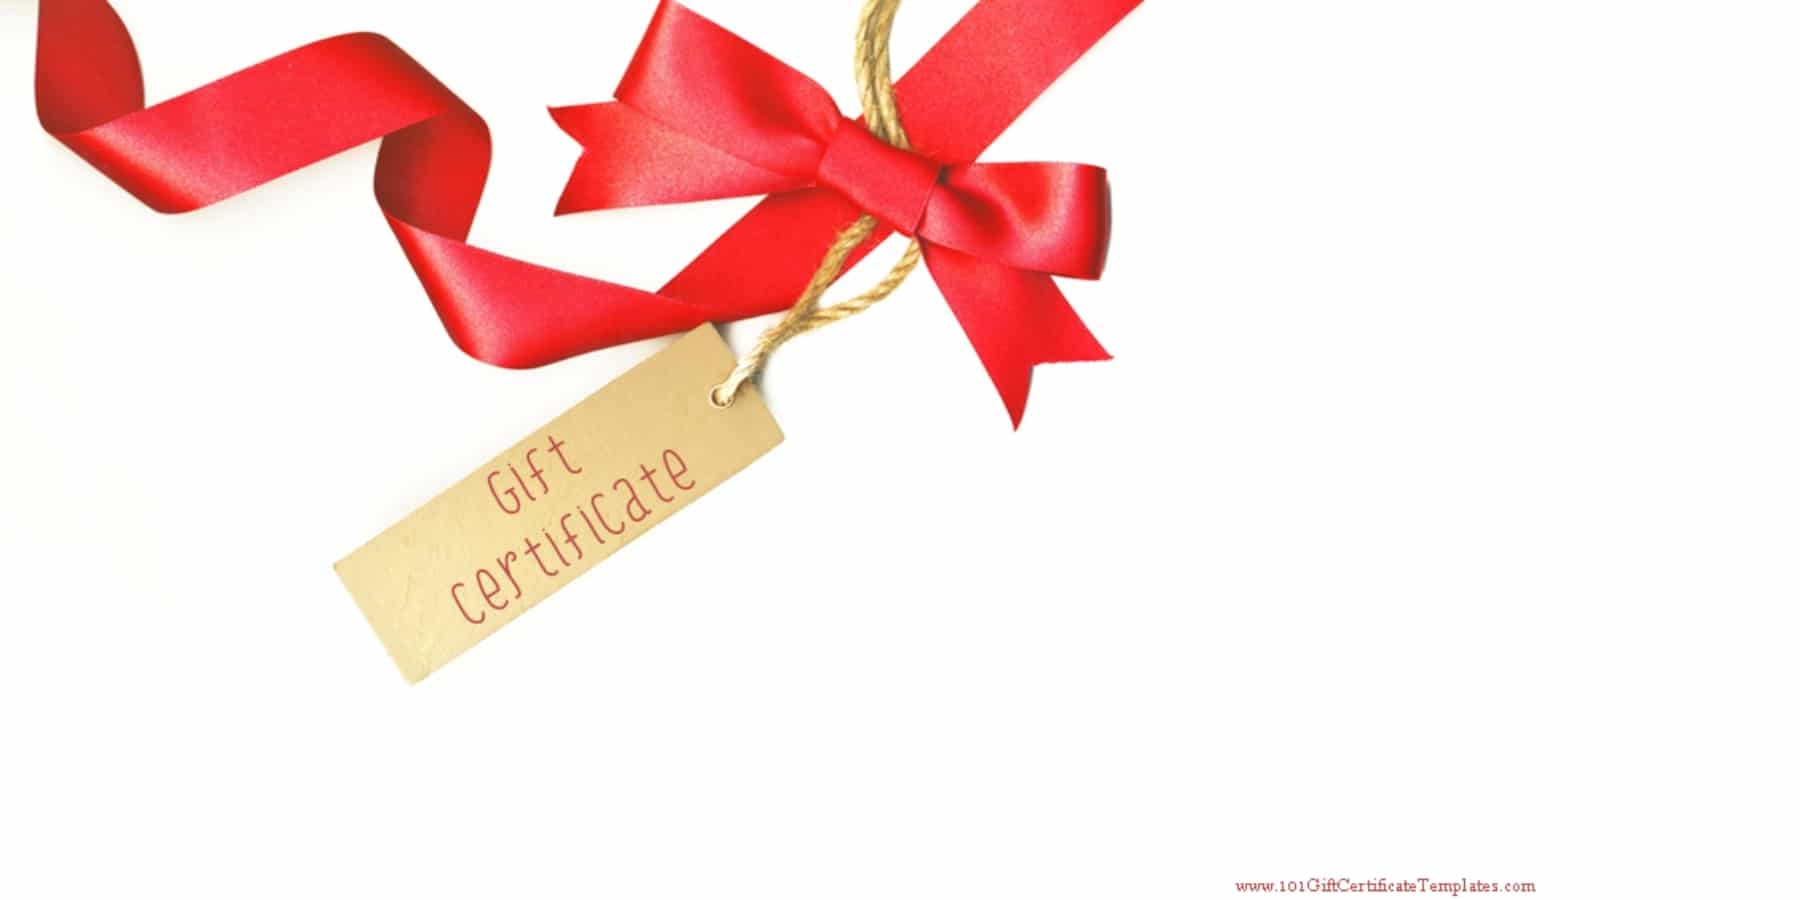 Printable gift certificate templates gift card which can be customized in any way with our gift card maker 1betcityfo Gallery